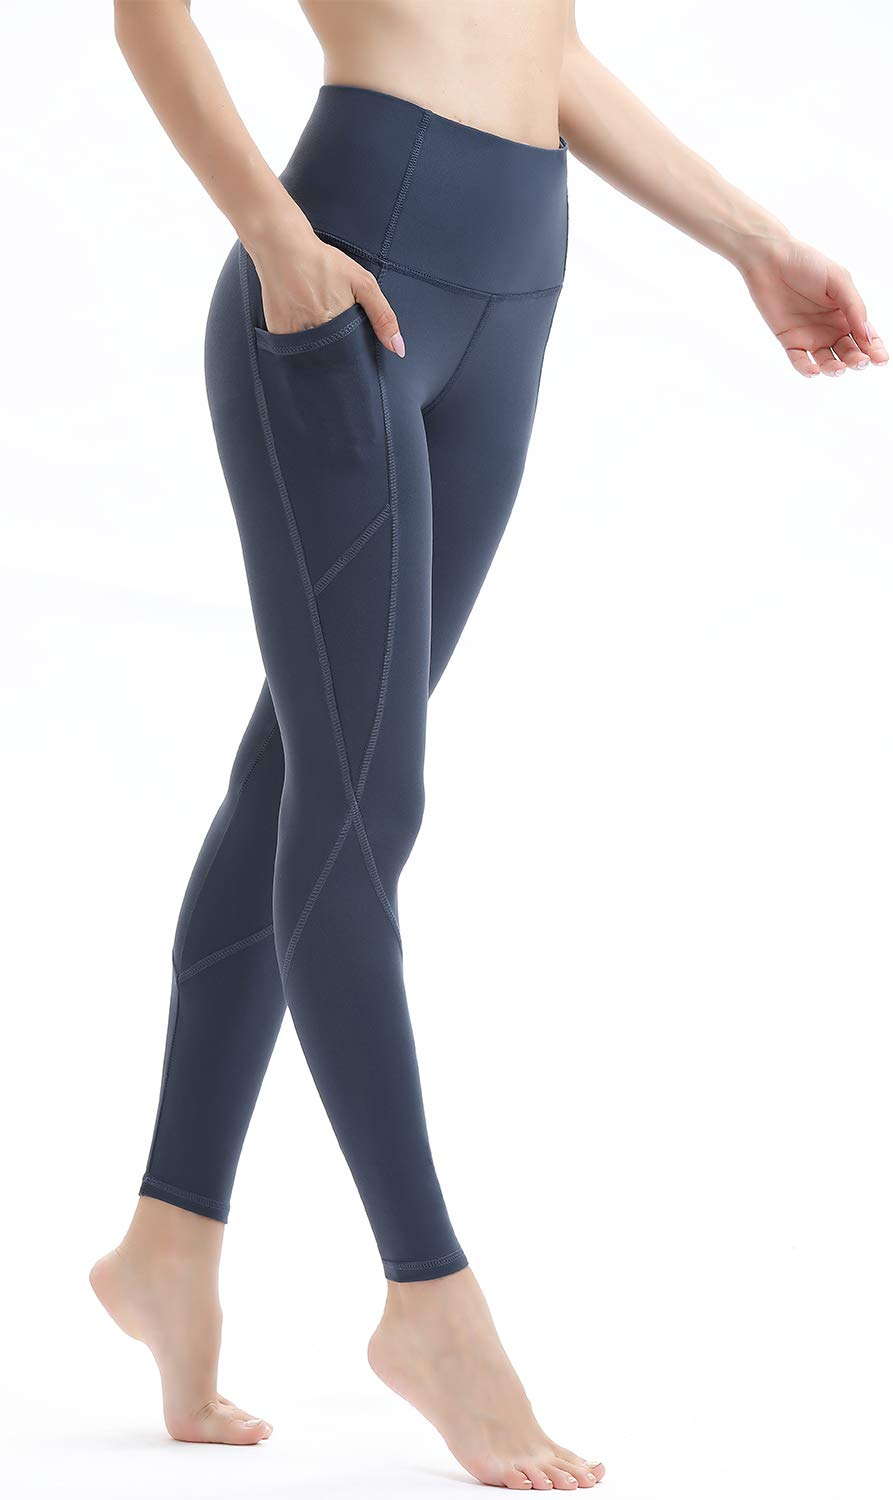 AFITNE Yoga Pants for Women High Waisted Tummy Control Leggings with Pockets Workout Yoga Pants True Navy - S